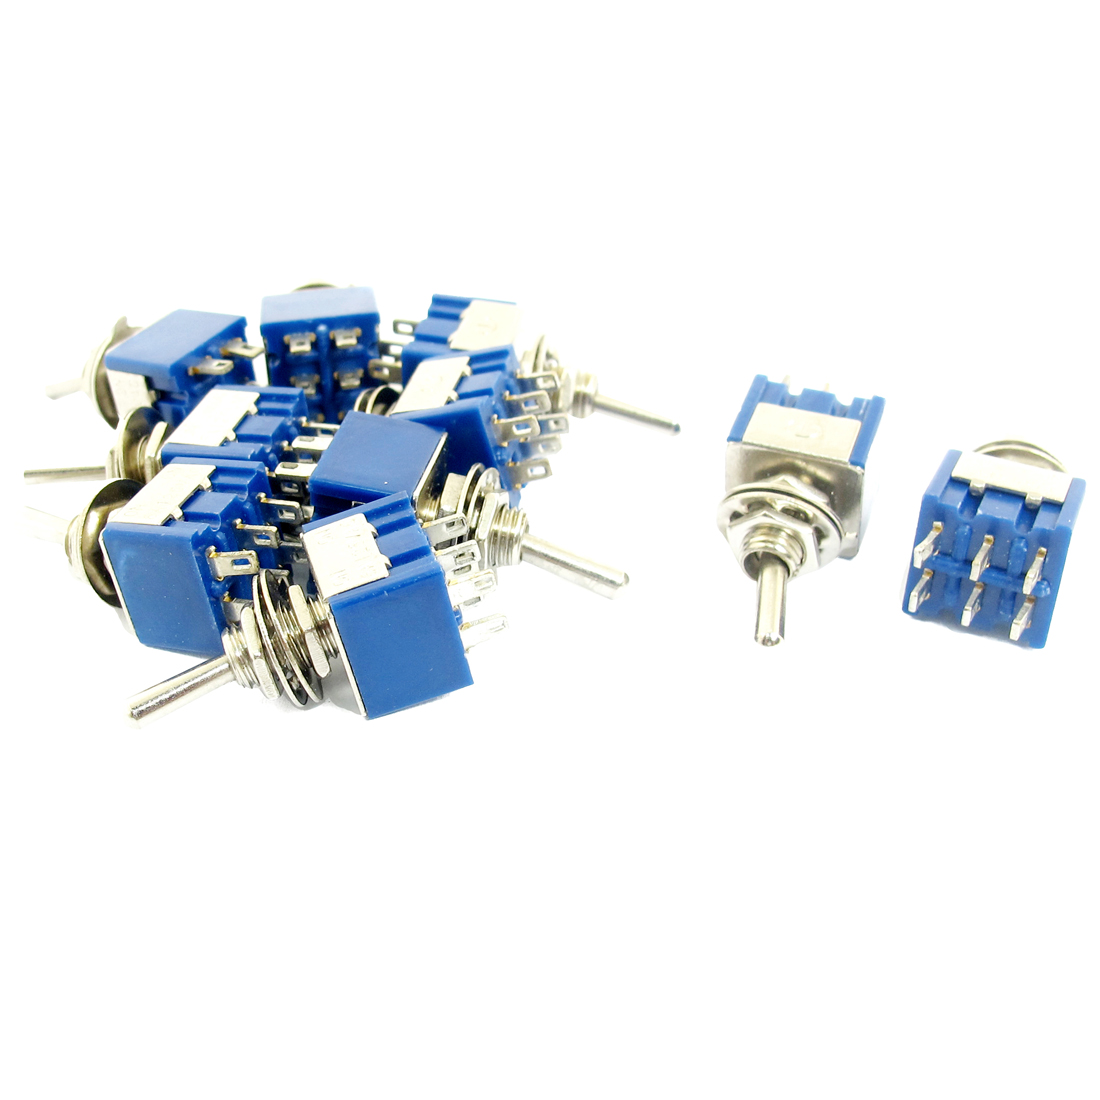 AC 125V 6A DPDT 2 Position ON/ON 6 Pins Self-lock Toggle Switch 10 Pcs Blue